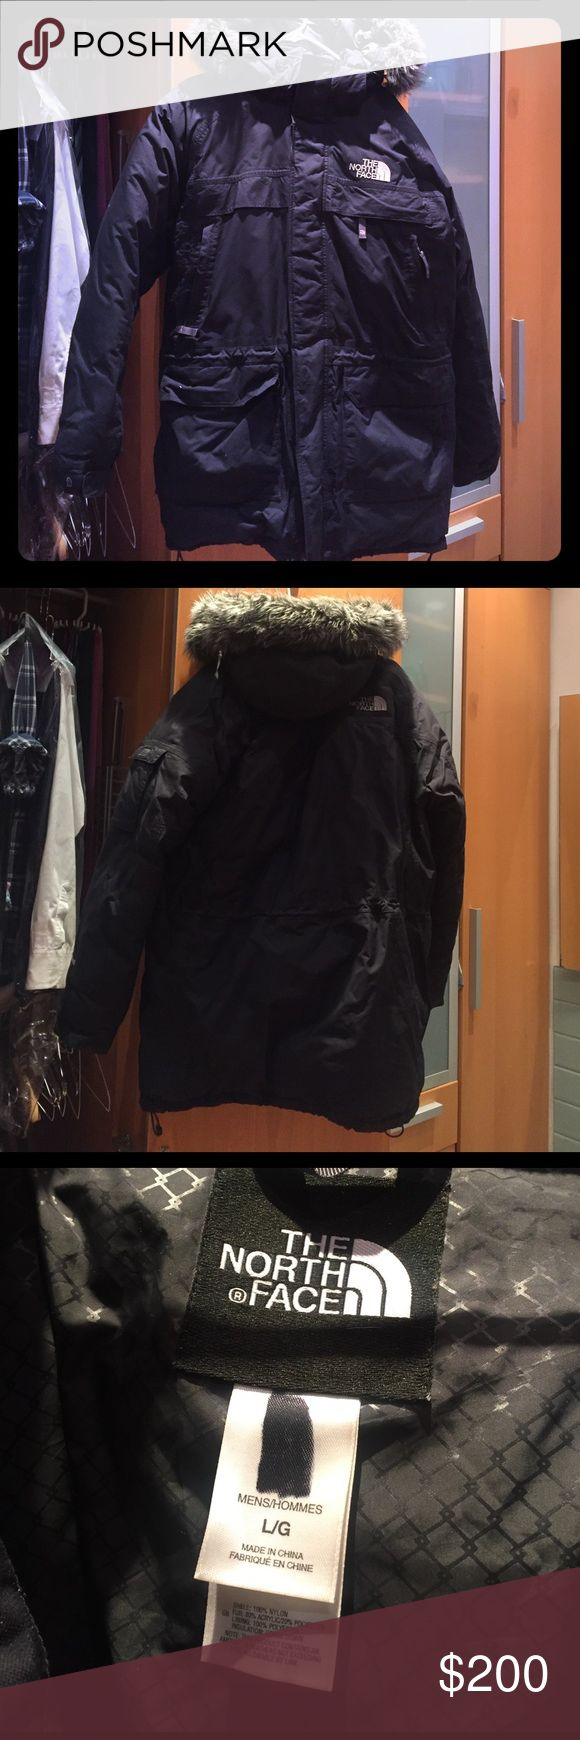 The North Face Down Parka Jacket - Hyvent - Black For sale is The North Face Parka - Hyvent 550 - in black. Features 550-fill down and fully waterproof. Condition is lightly used as it is simply too warm of a jacket. Comes with hood/fur attachment. All zippers are in a good & working order. The black spot on the tag is a simple sharpie mark where my last name was written. Features three outer upper chest and 4 outer lower stomach pockets. There are also 4 inner pockets for cell phone…